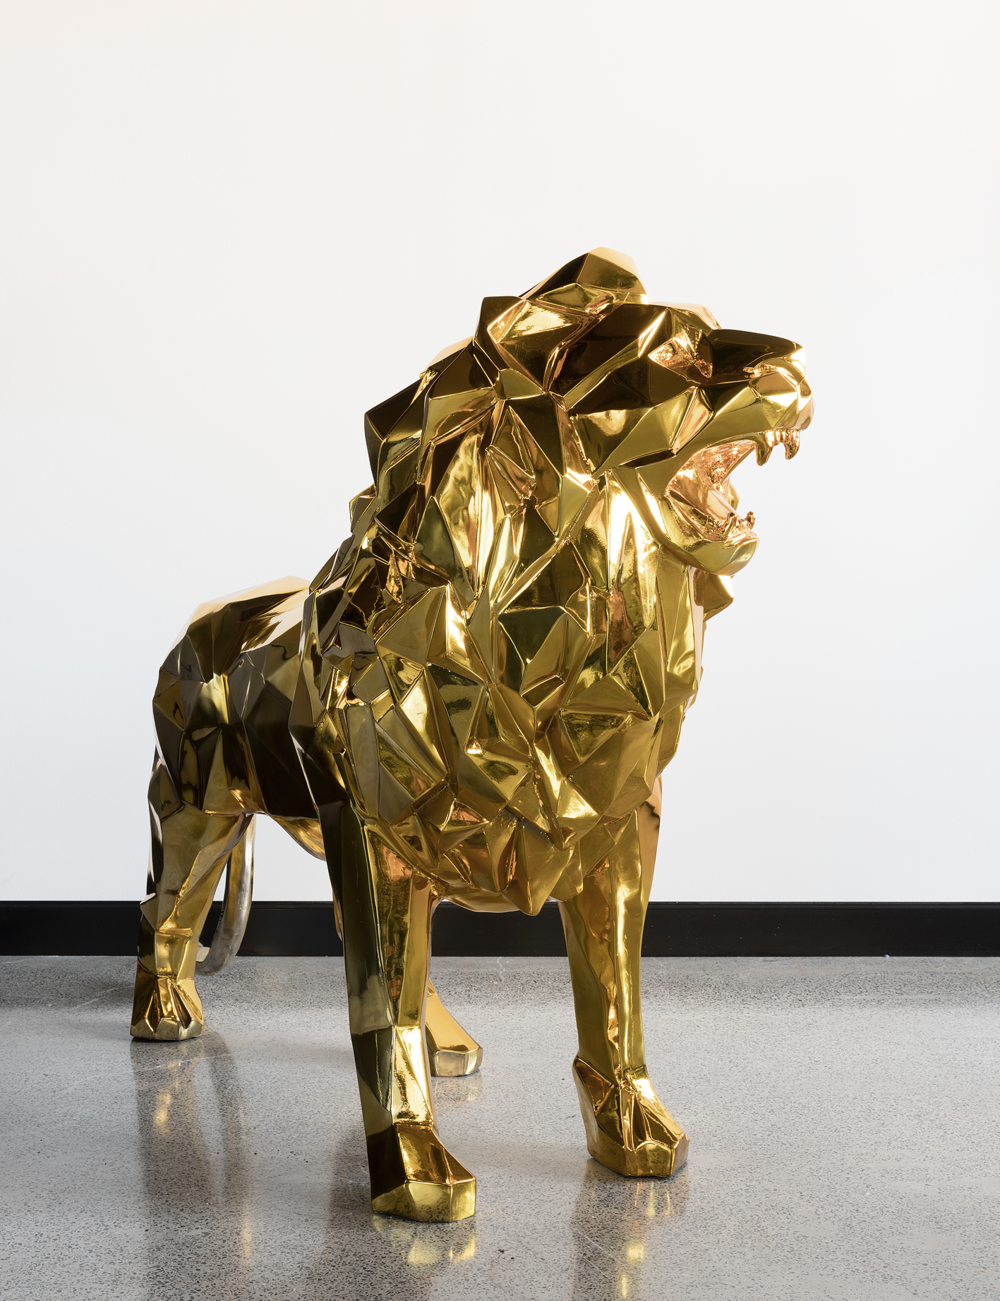 Gold fearless lion – Sculpture